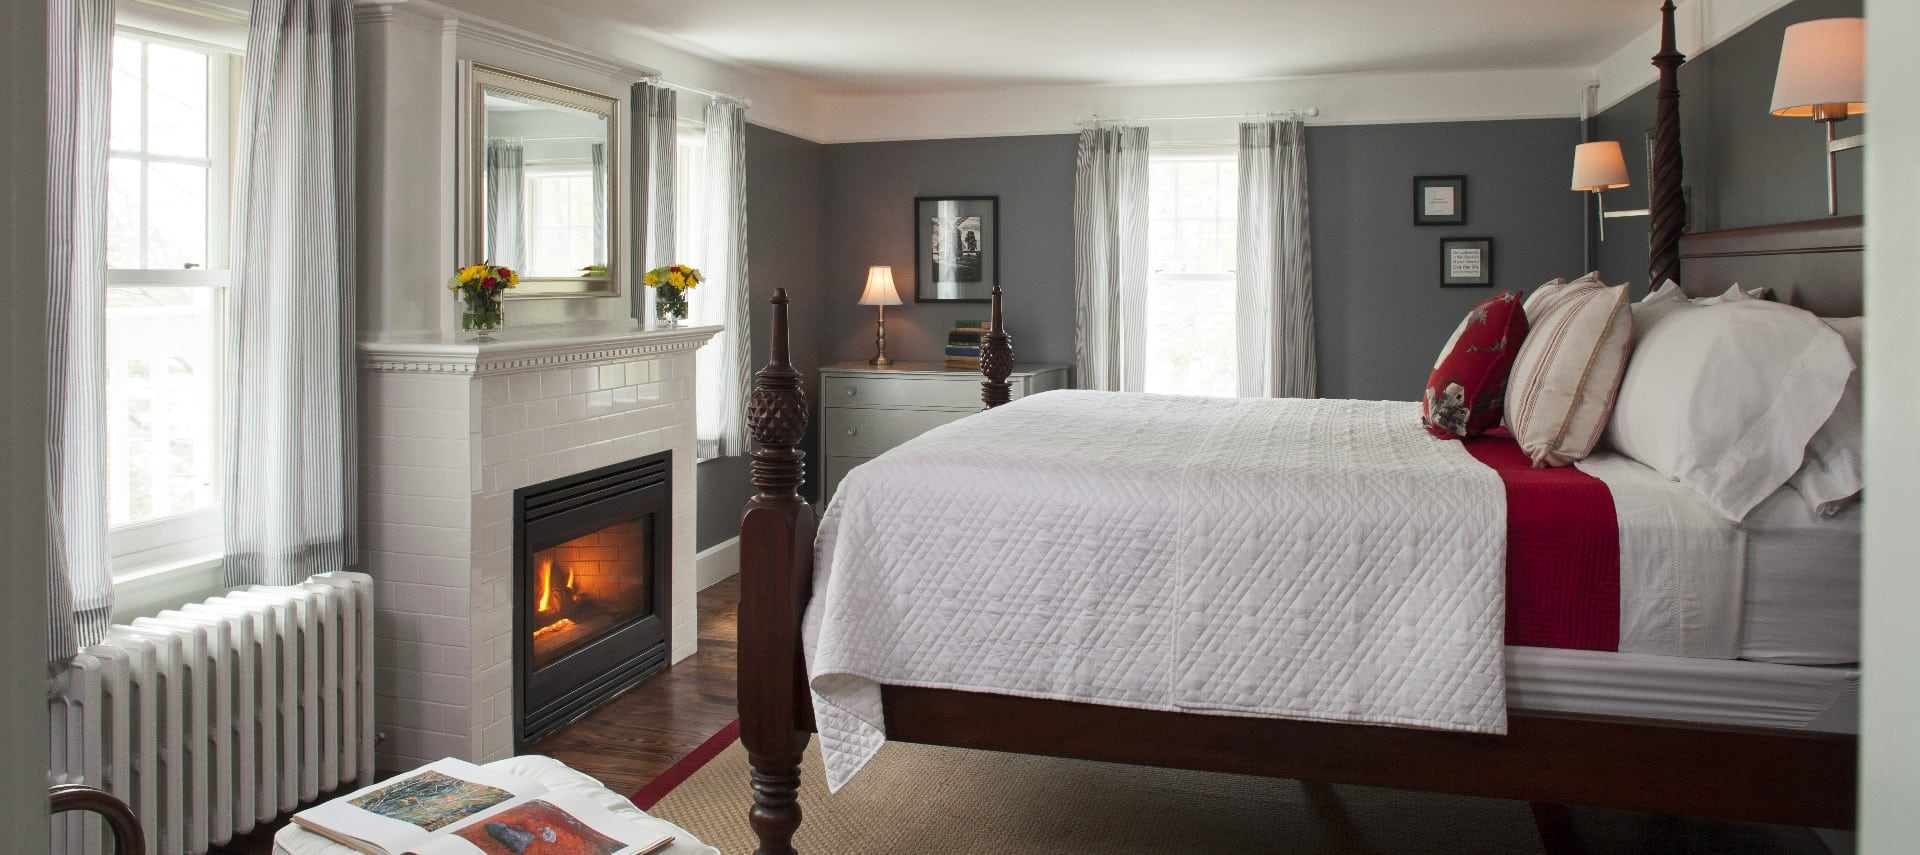 Large room with a fireplace and a wooden four-post bed made up in white